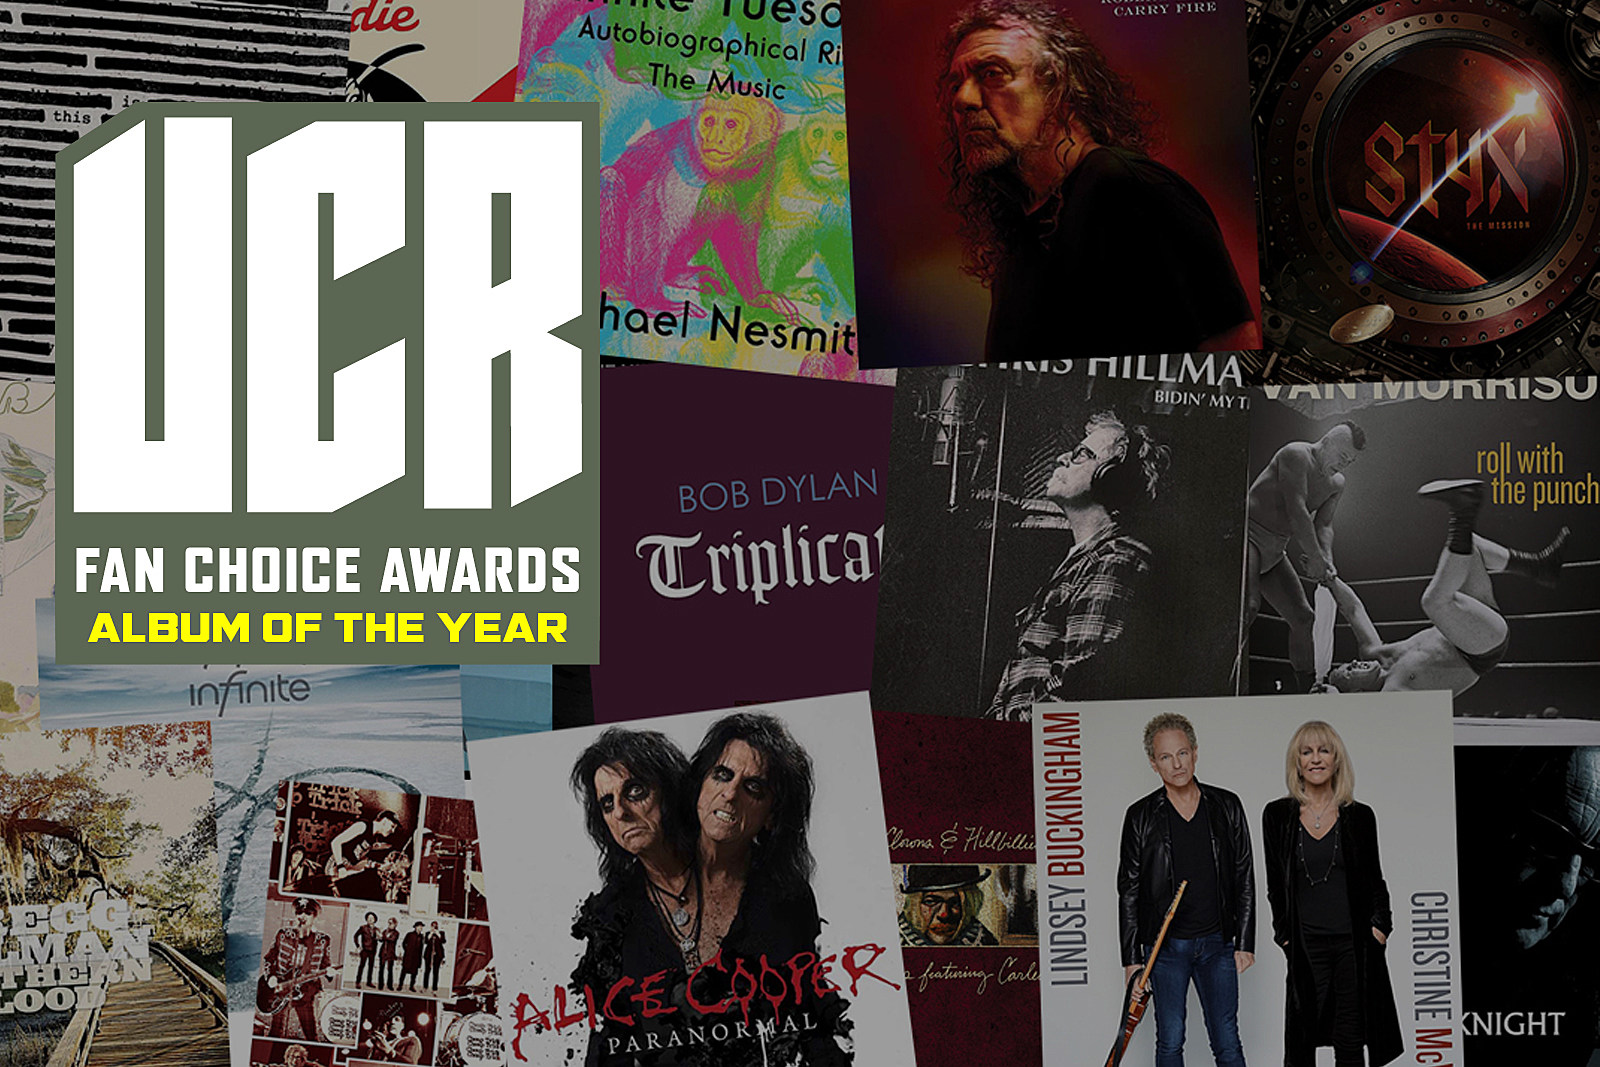 2017 UCR Fan Choice Awards Album of the Year